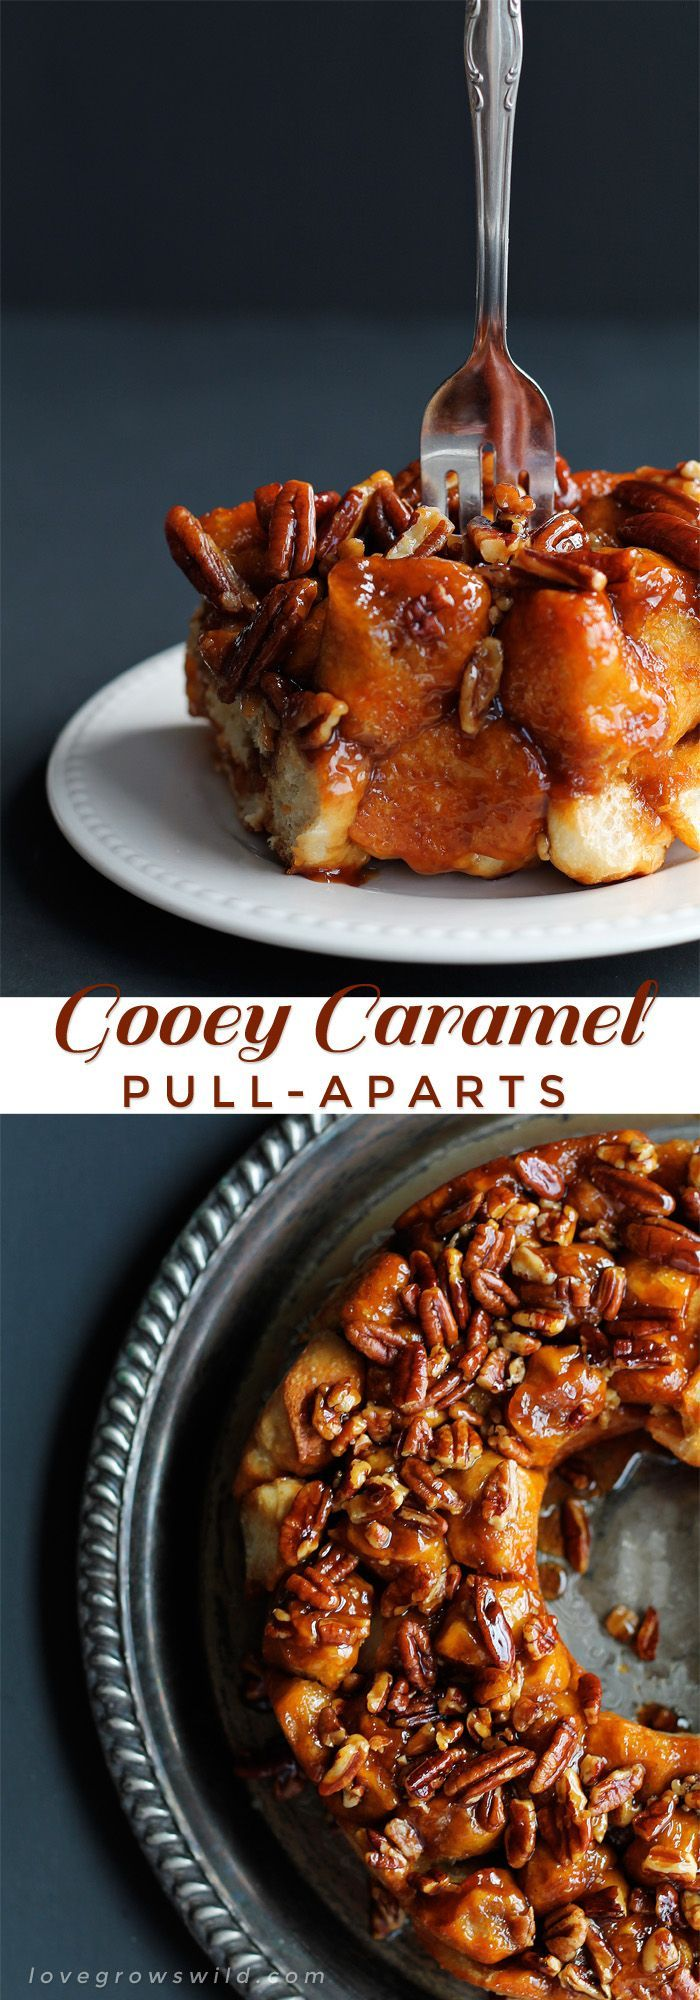 Gooey Caramel Pull-Aparts - only 5 ingredients needed for this delicious, decadent treat! Serve warm out of the oven for breakfast OR dessert.   LoveGrowsWild.com